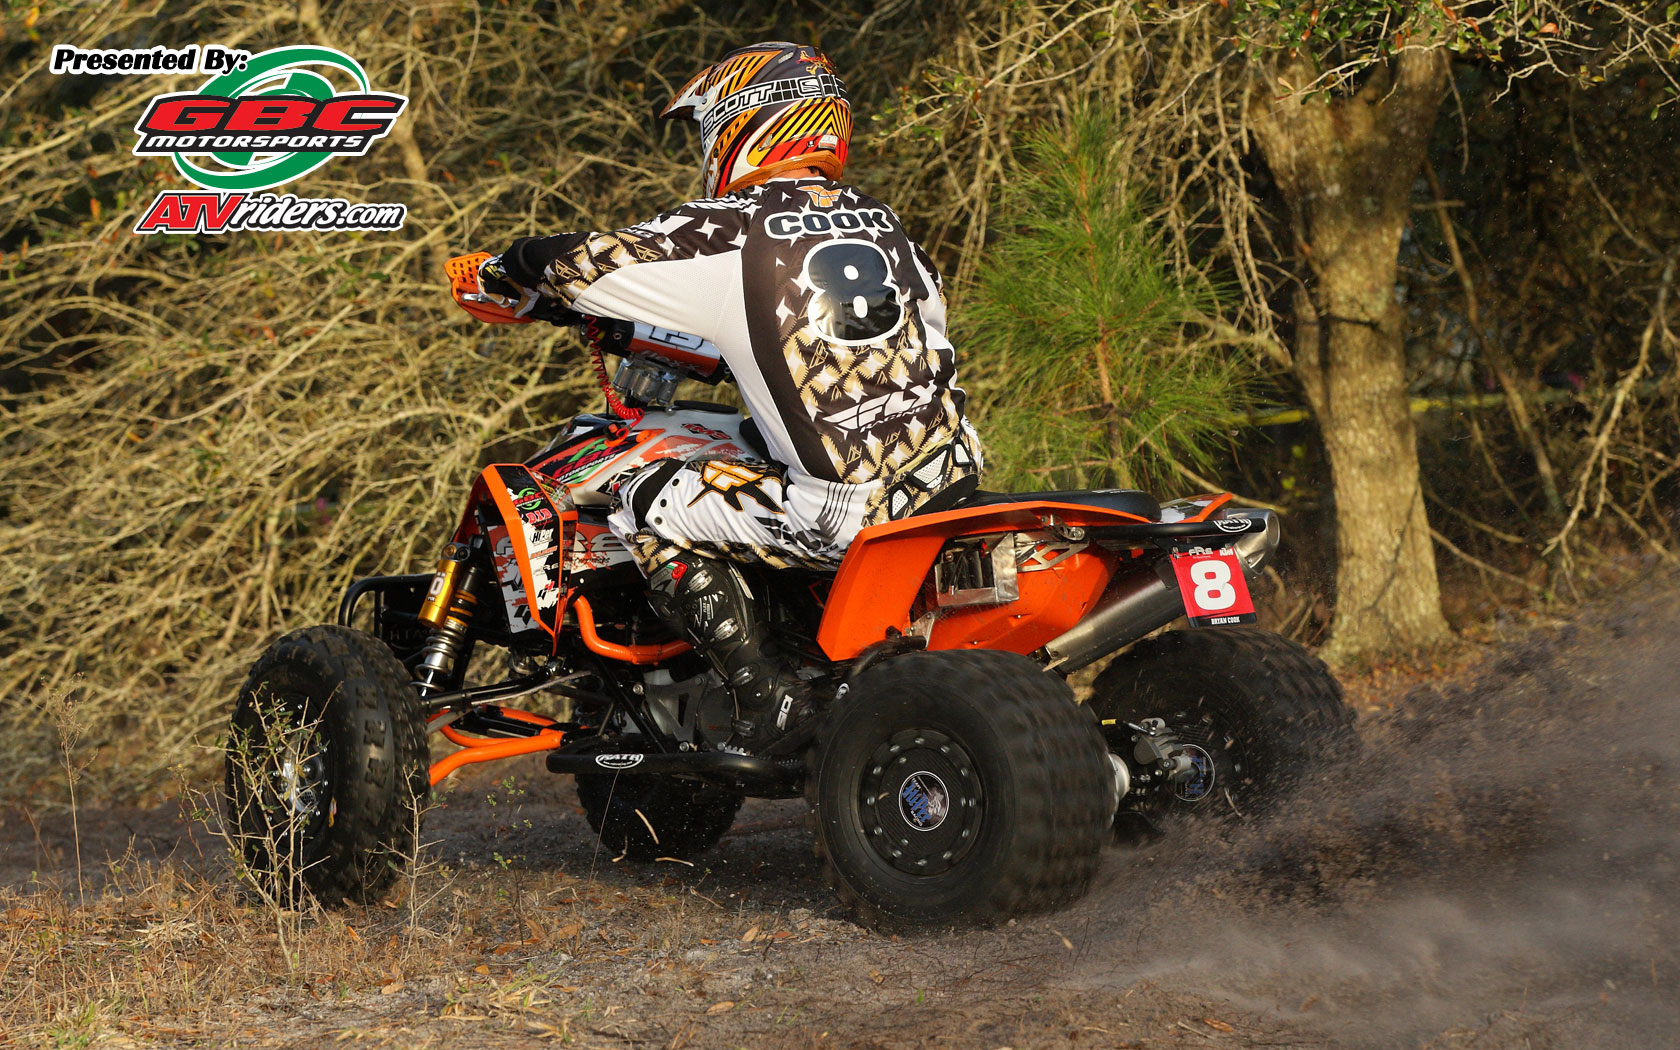 fre ktm 39 s 8 bryan cook ktm 450 xc atv wednesday wallpapers. Black Bedroom Furniture Sets. Home Design Ideas